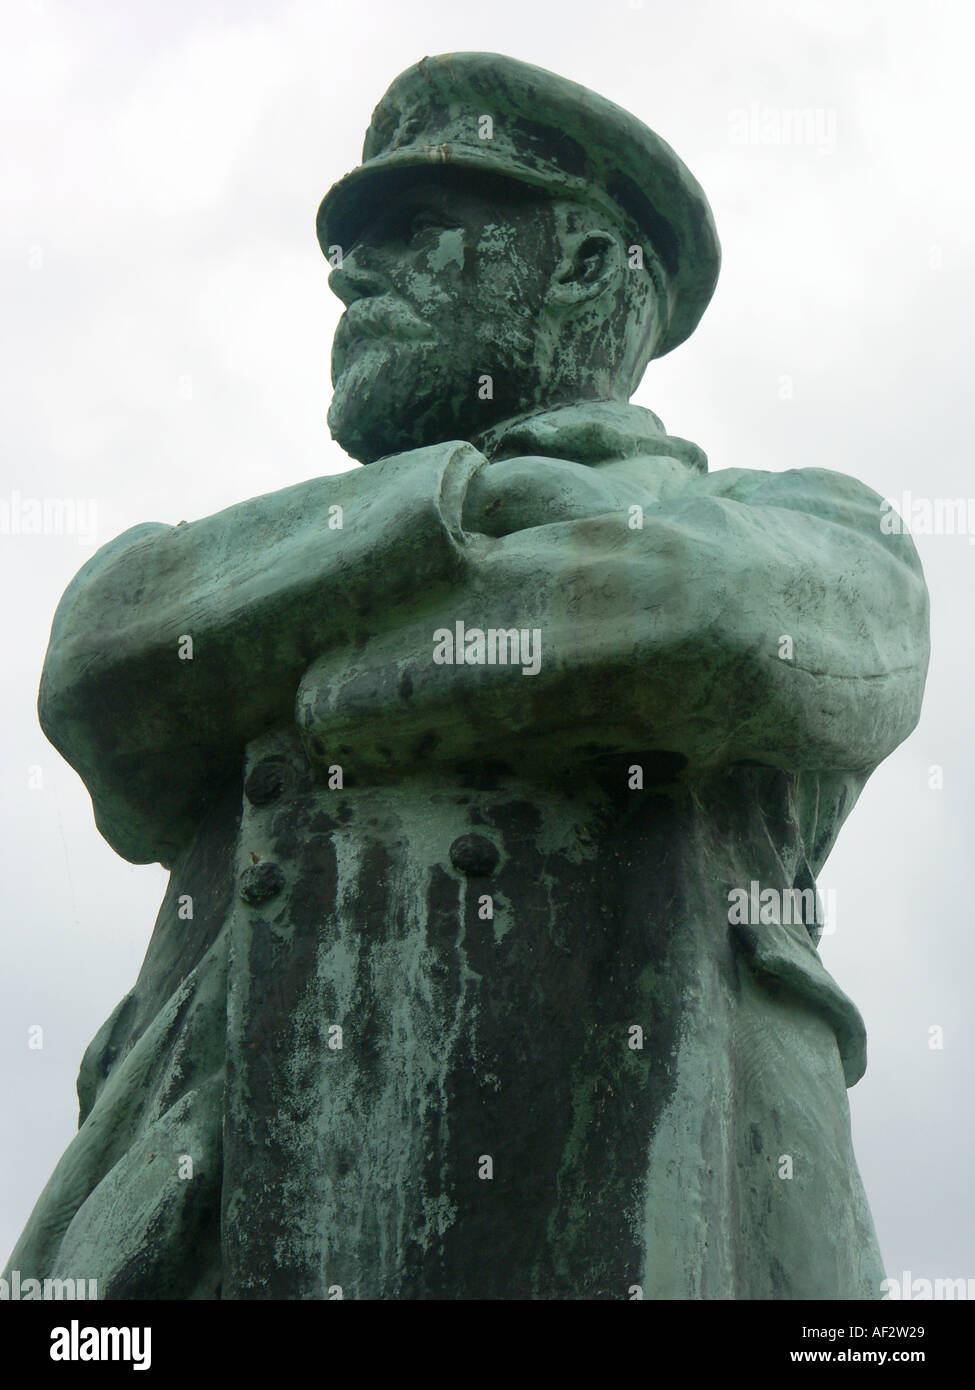 Statue of Captain Smith in Lichfield Captain of the Titanic - Stock Image